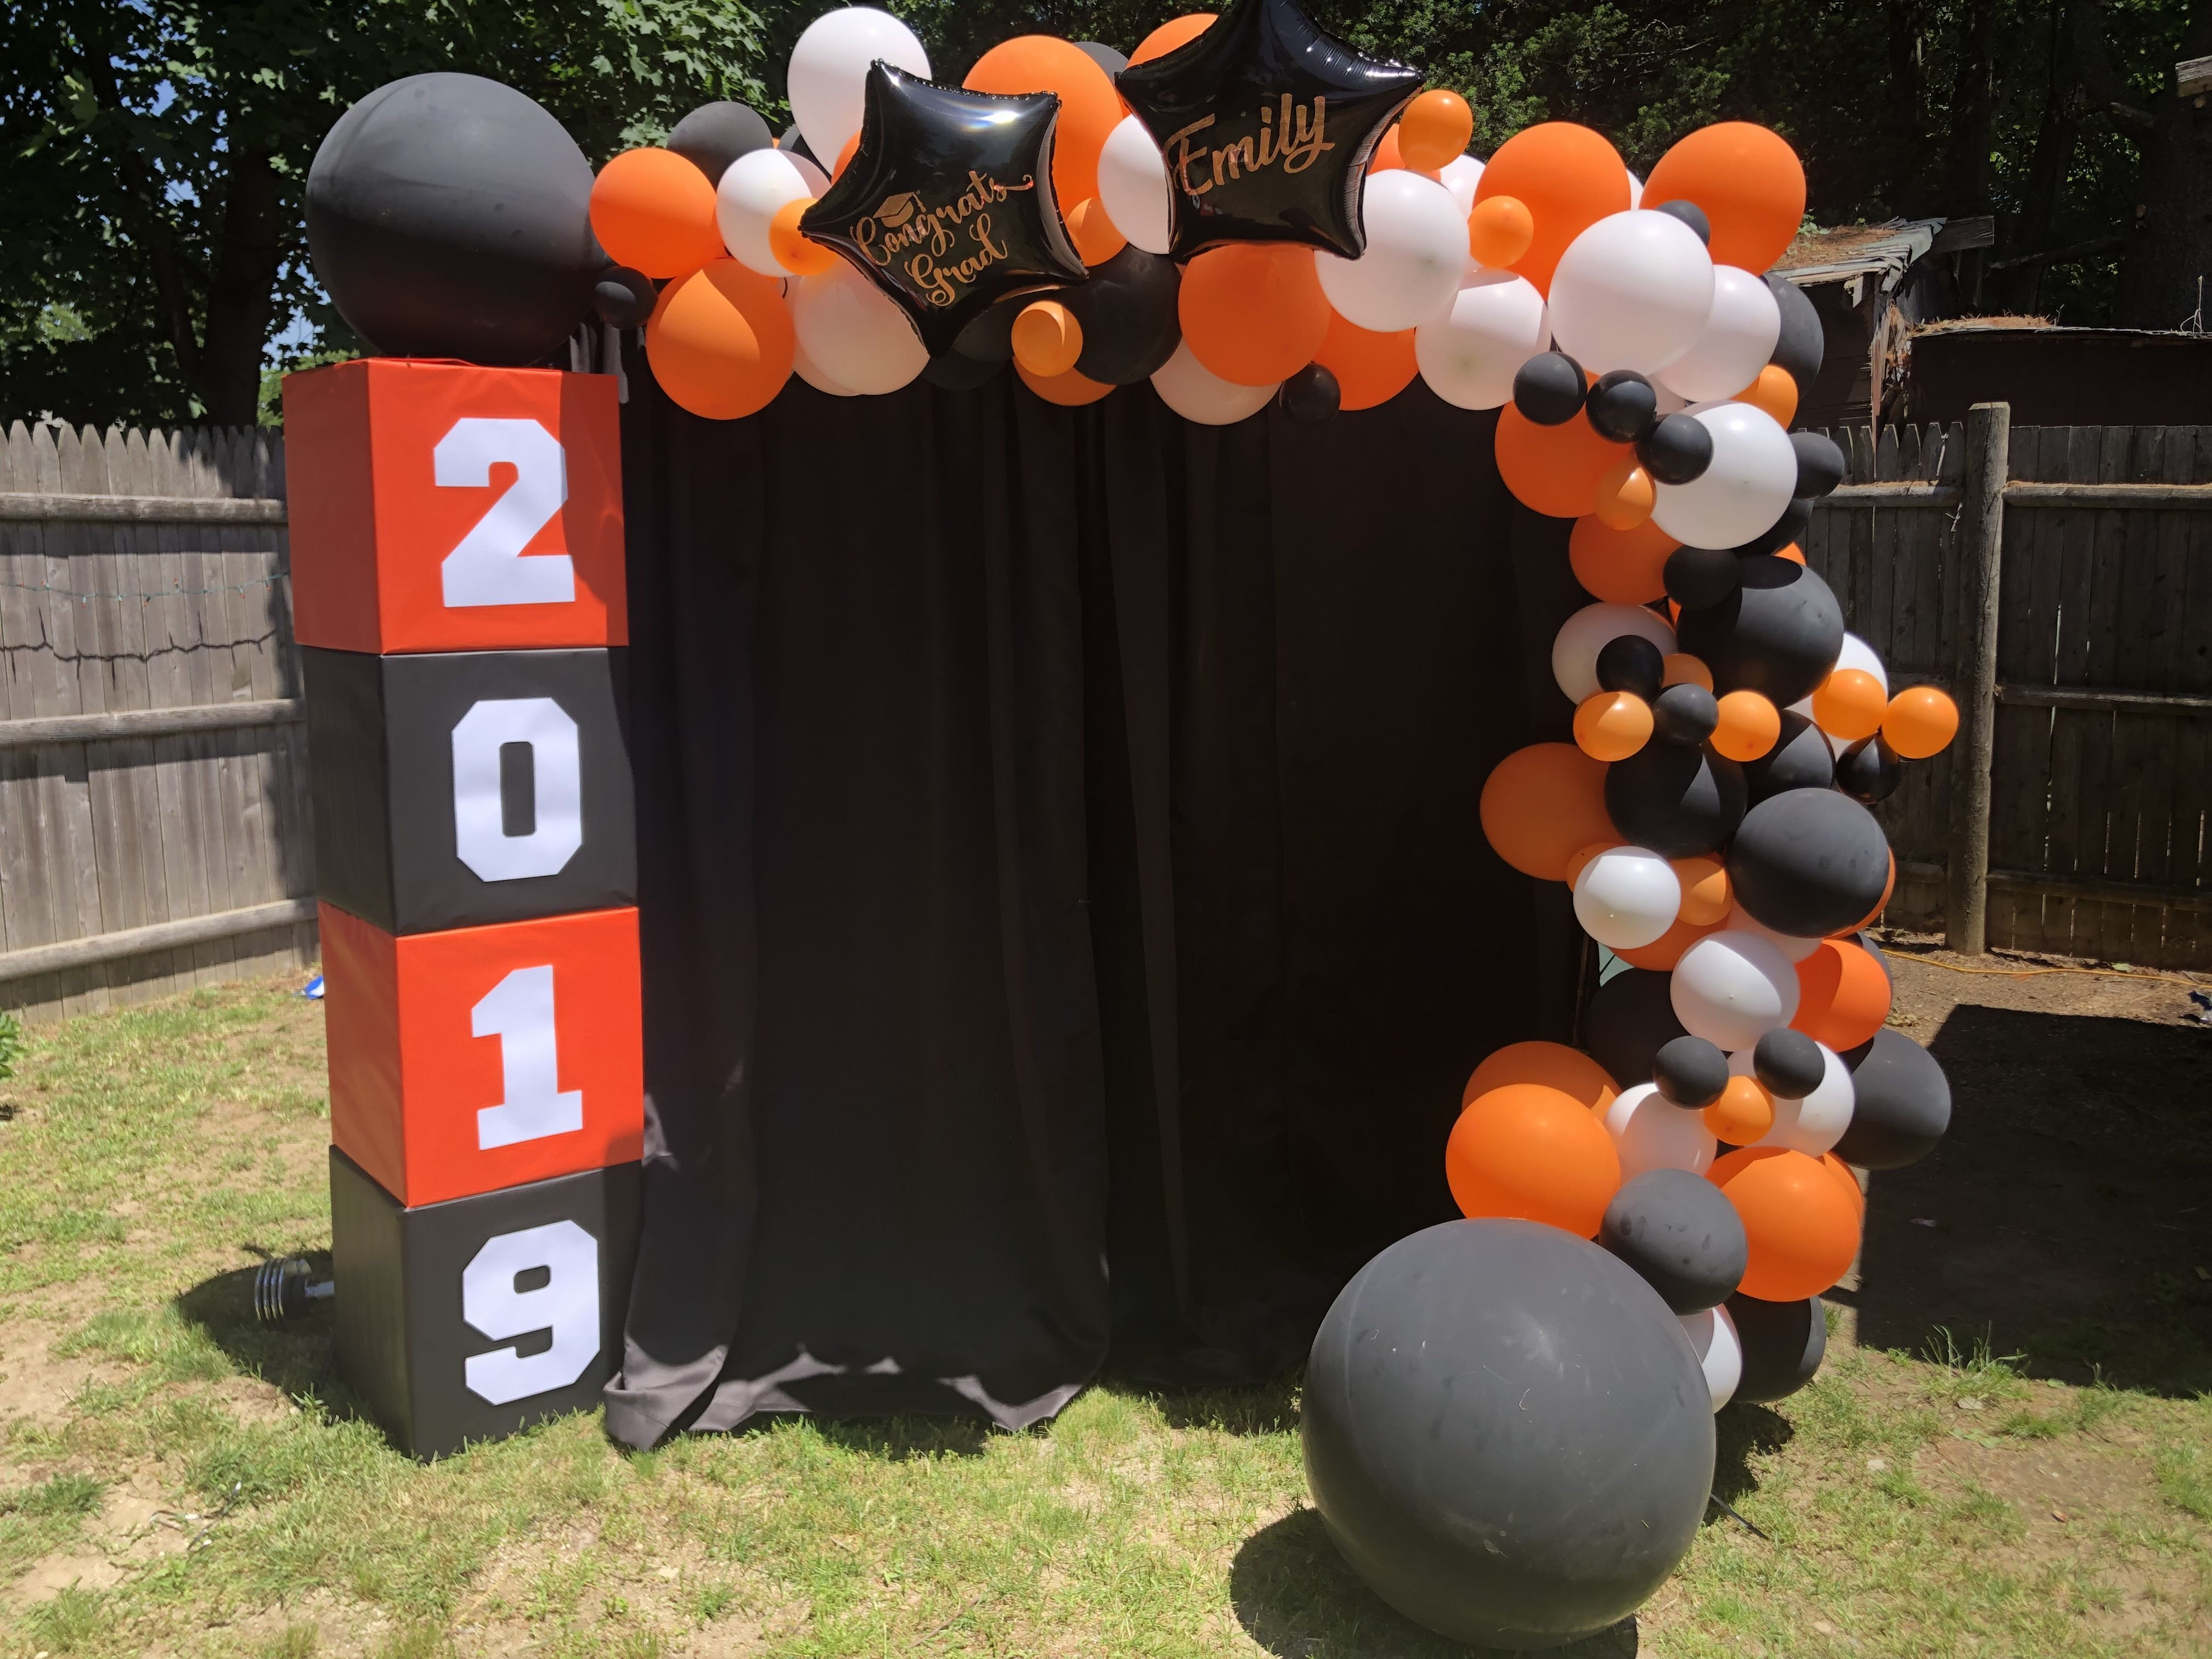 Graduation Backdrop Ideas Viral And Trend In 2020 Graduation Party Backdrops Graduation Backdrop Diy Graduation Decorations